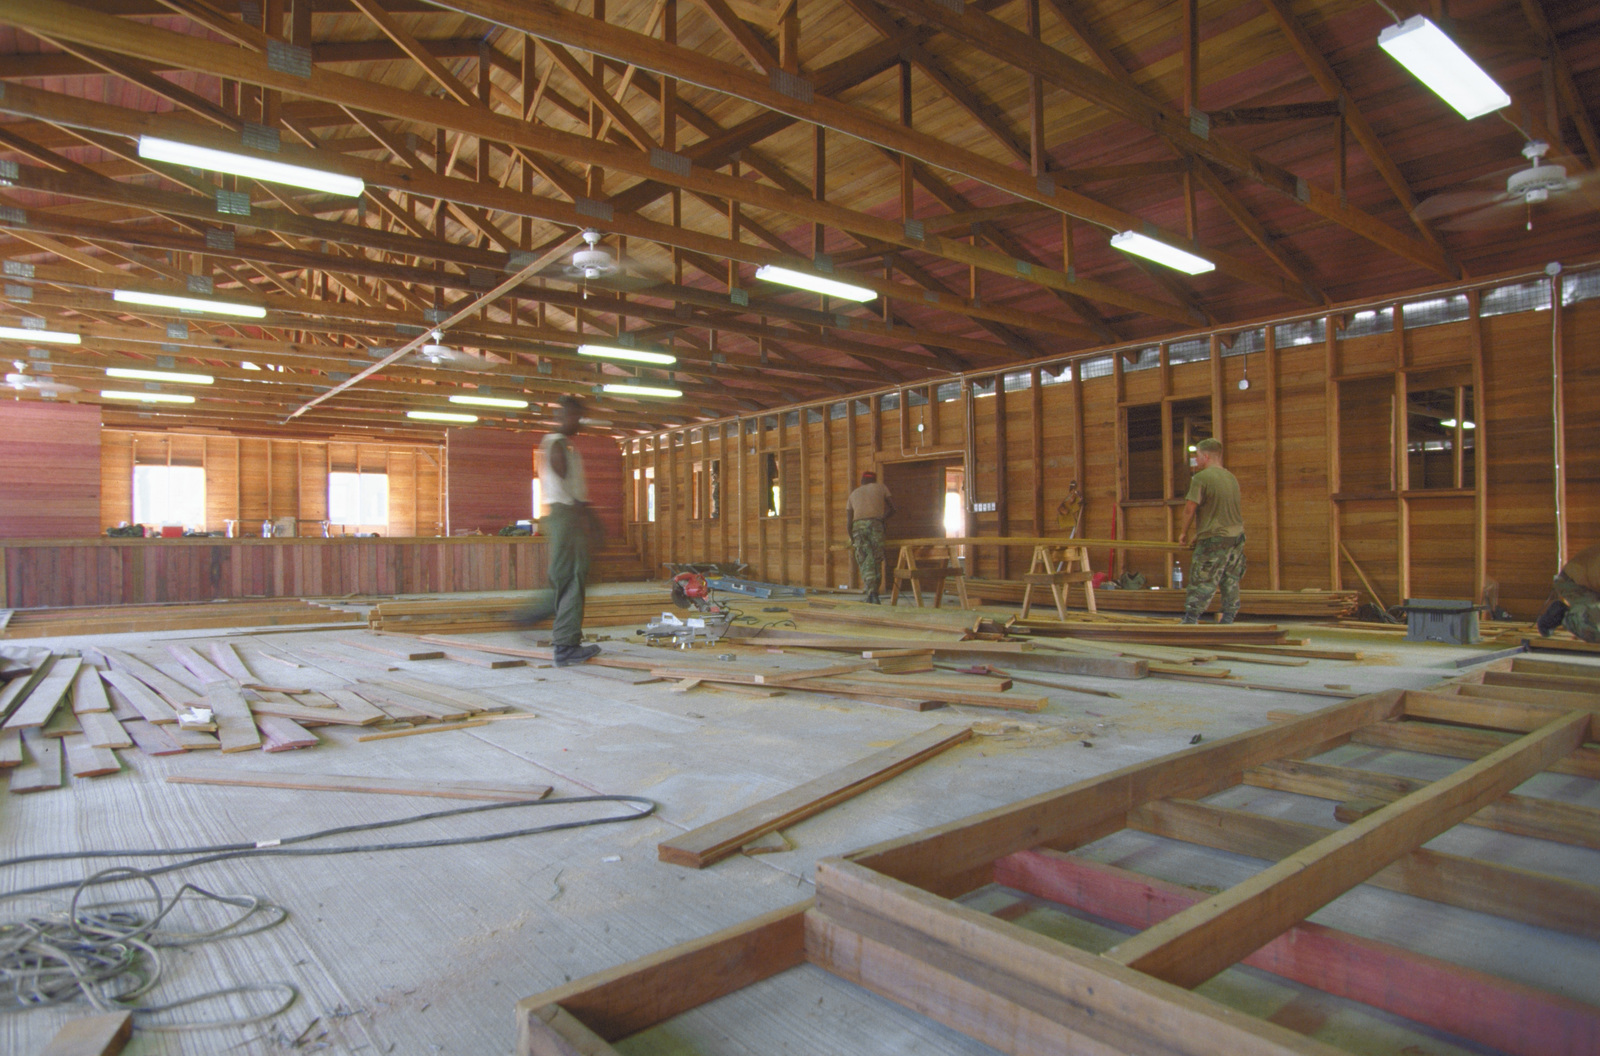 Members from the 820th Red Horse Squadron, Nellis Air Force Base, Nevada, work on the interior construction of a new school building. The school is being rebuilt to replace the old St. Mary's High School in downtown Georgetown as part of the this first combined humanitarian and civic assistance exercise conducted between the United States and Guyana. Military personnel from Air Force, Air Force Reserve & National Guard, Army, Army National Guard and Marine Corps participated in the exercise which included engineering and medical readiness training